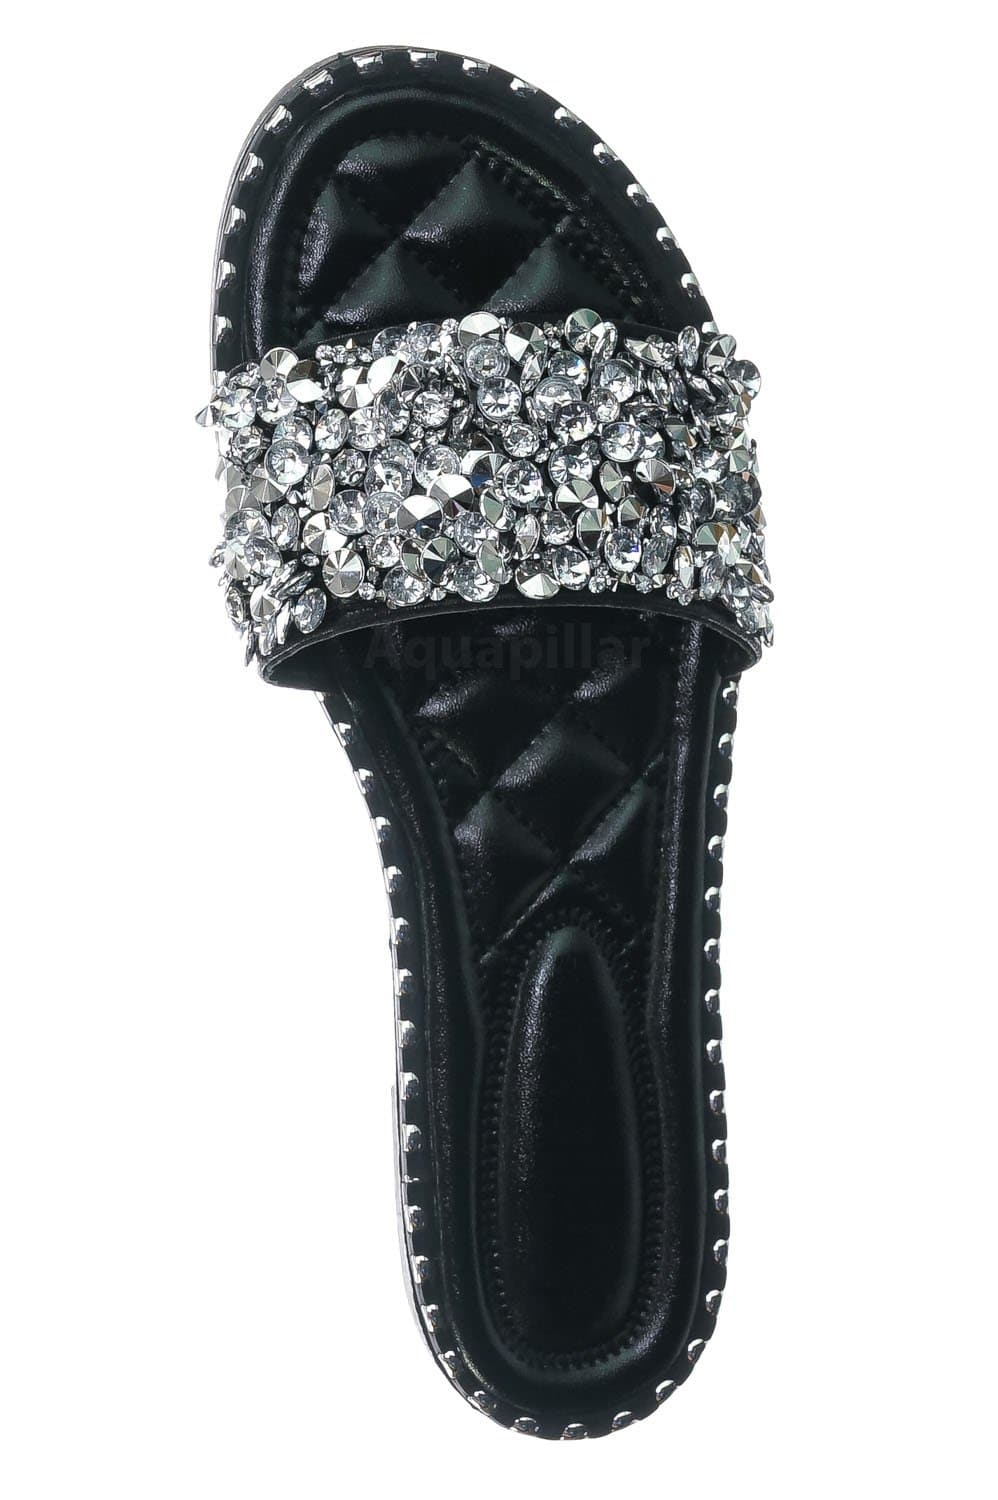 Tia01 Black Pu Rhinestone Slides w Metal Welt - Women Slip On w Assorted Crystal